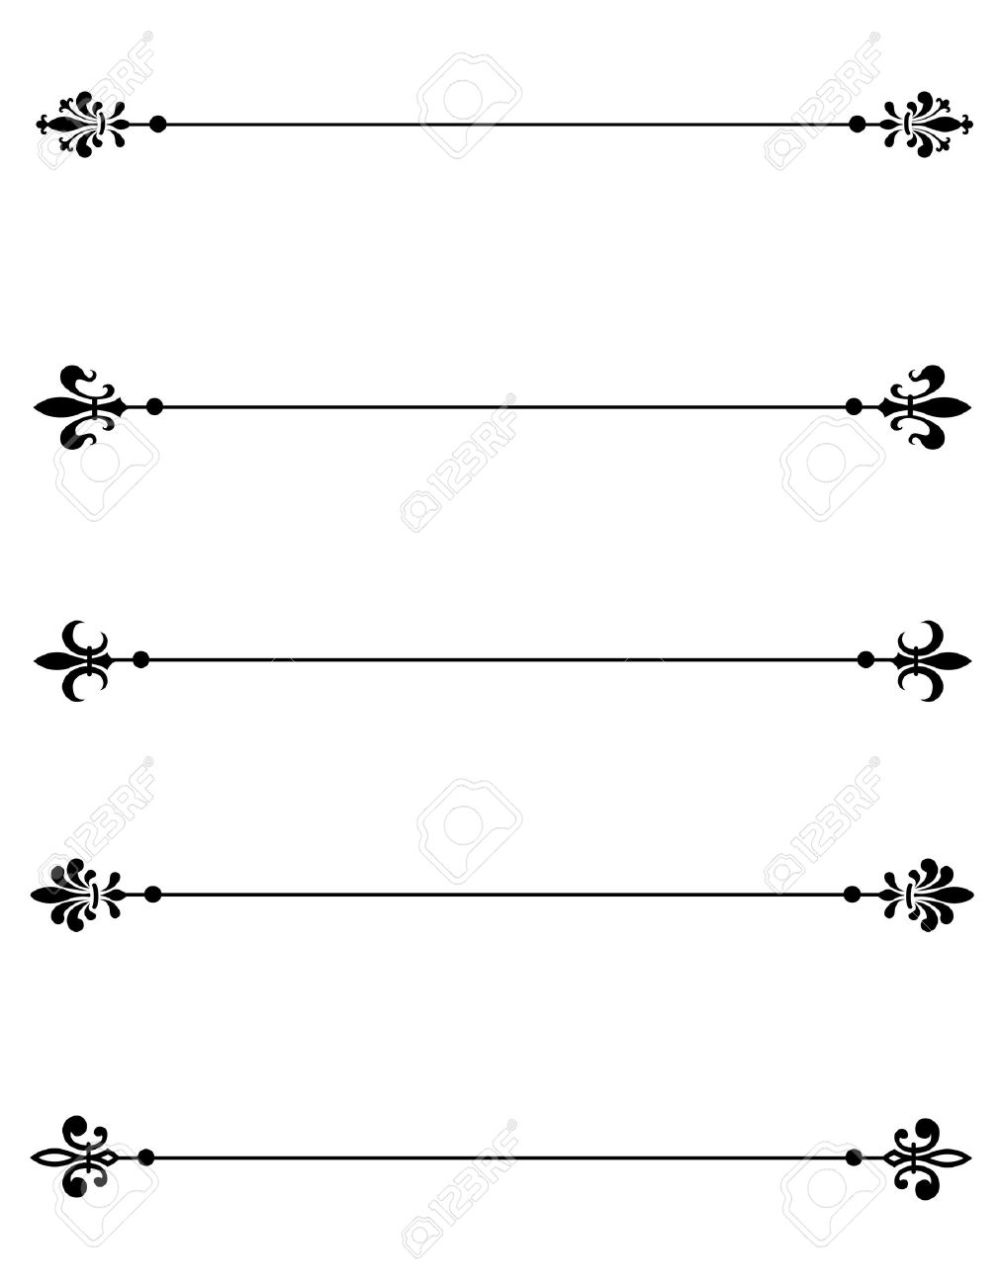 medium resolution of clip art collection of different decorative fleur de lis page dividers border collection stock vector